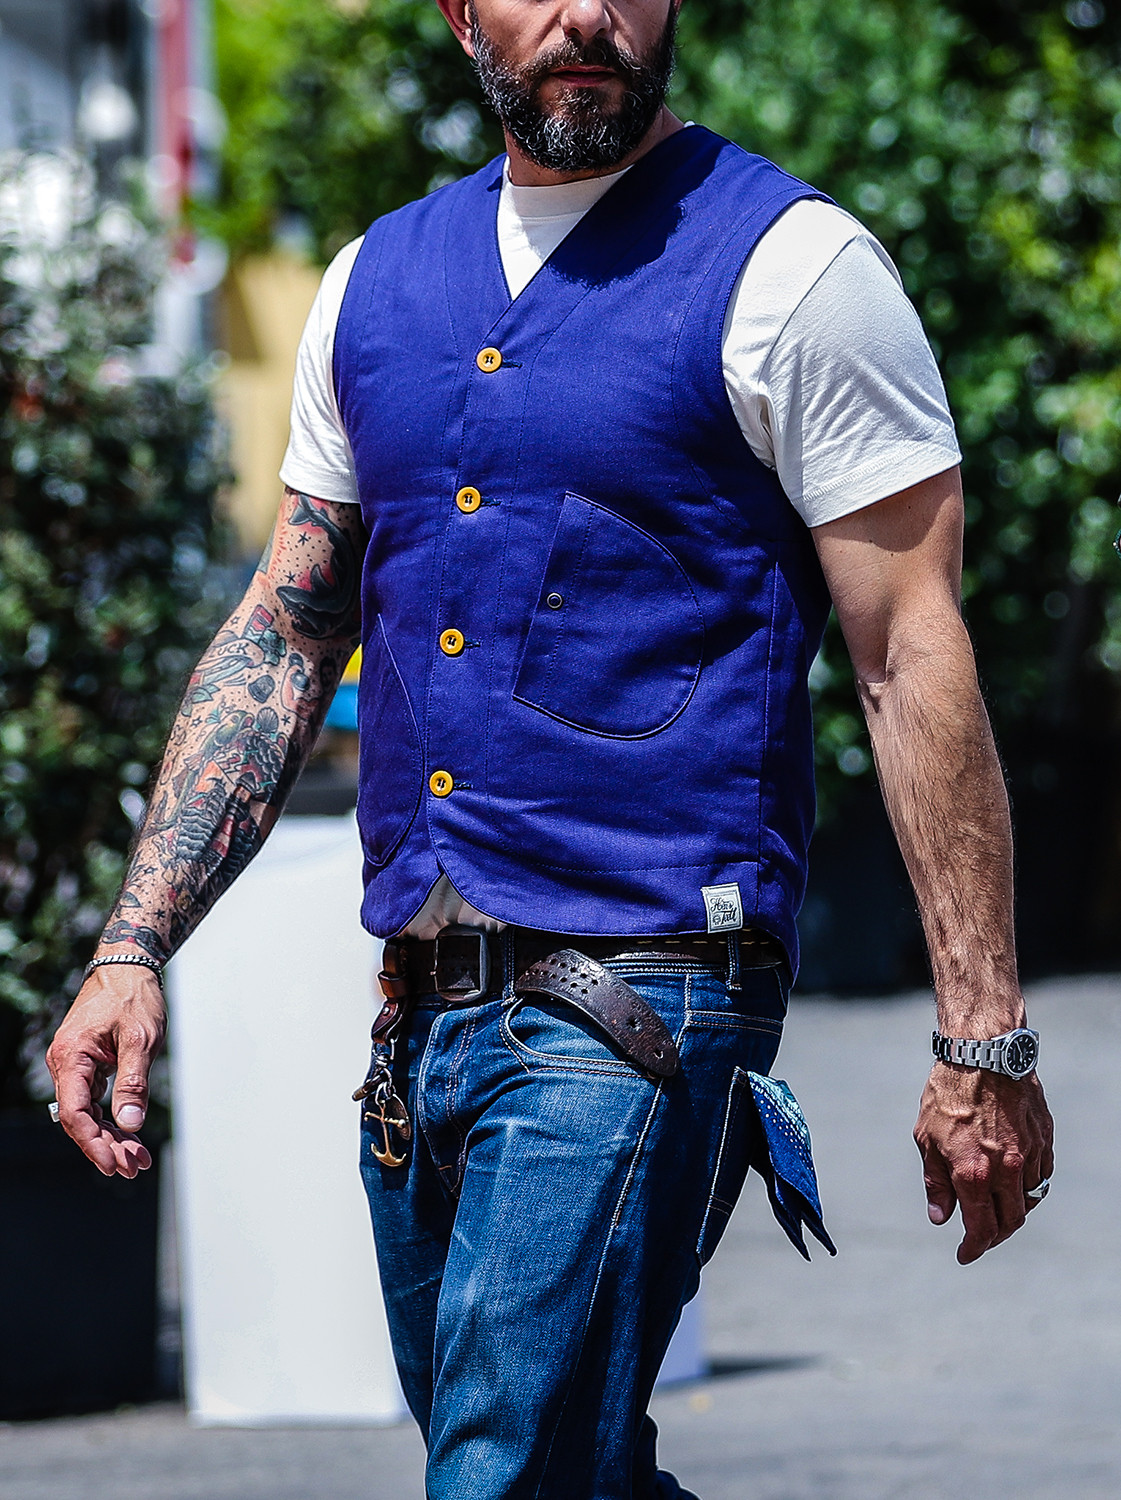 Men's outfit idea for 2021 with blue plain waistcoat, white crew neck t-shirt, blue jeans, brown chelsea boots. Suitable for spring, summer and autumn.